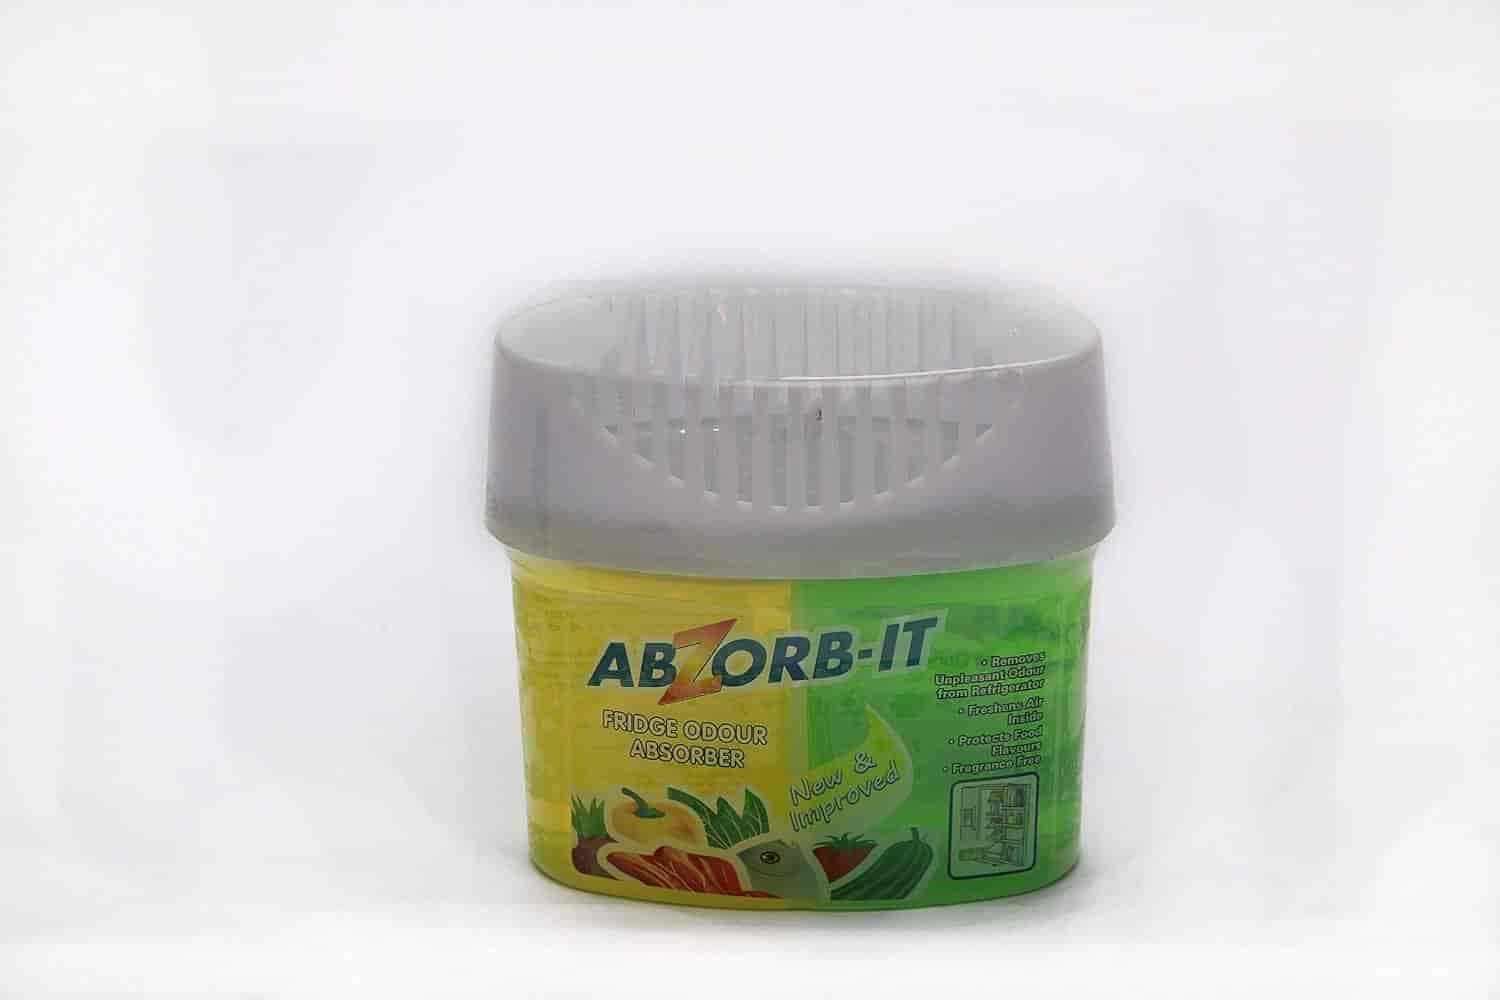 Abzorb-it-Refrigerator-odor-absorber-(Green)-120g